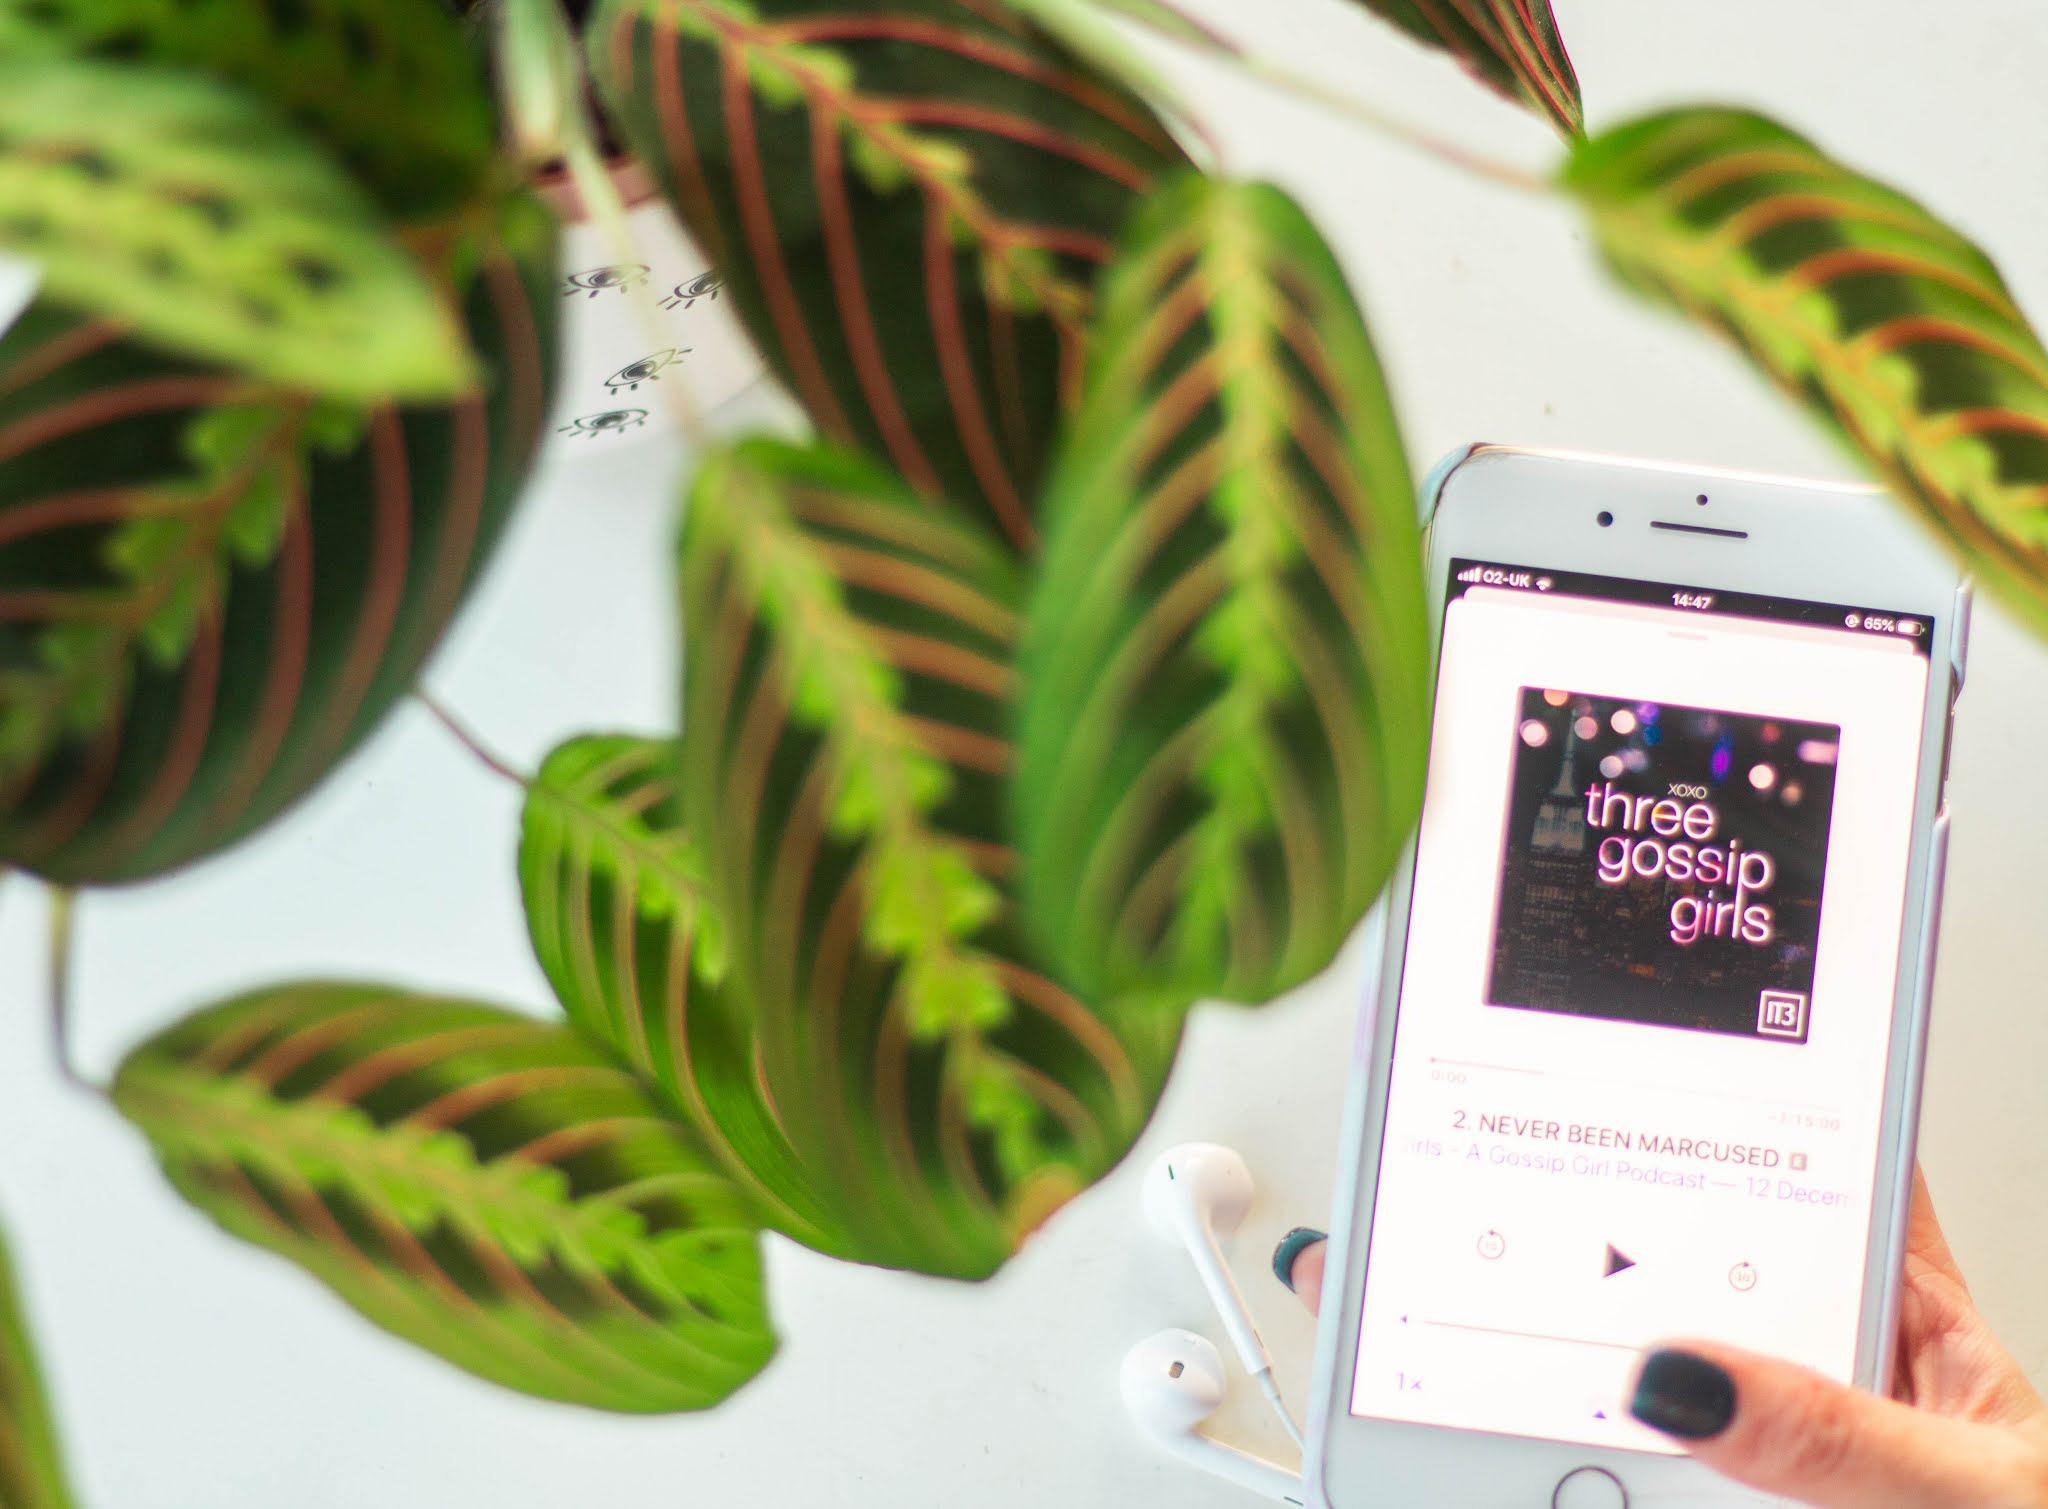 iphone showing top 2019 podcast - three gossip girls - with plant - self care - intentional living